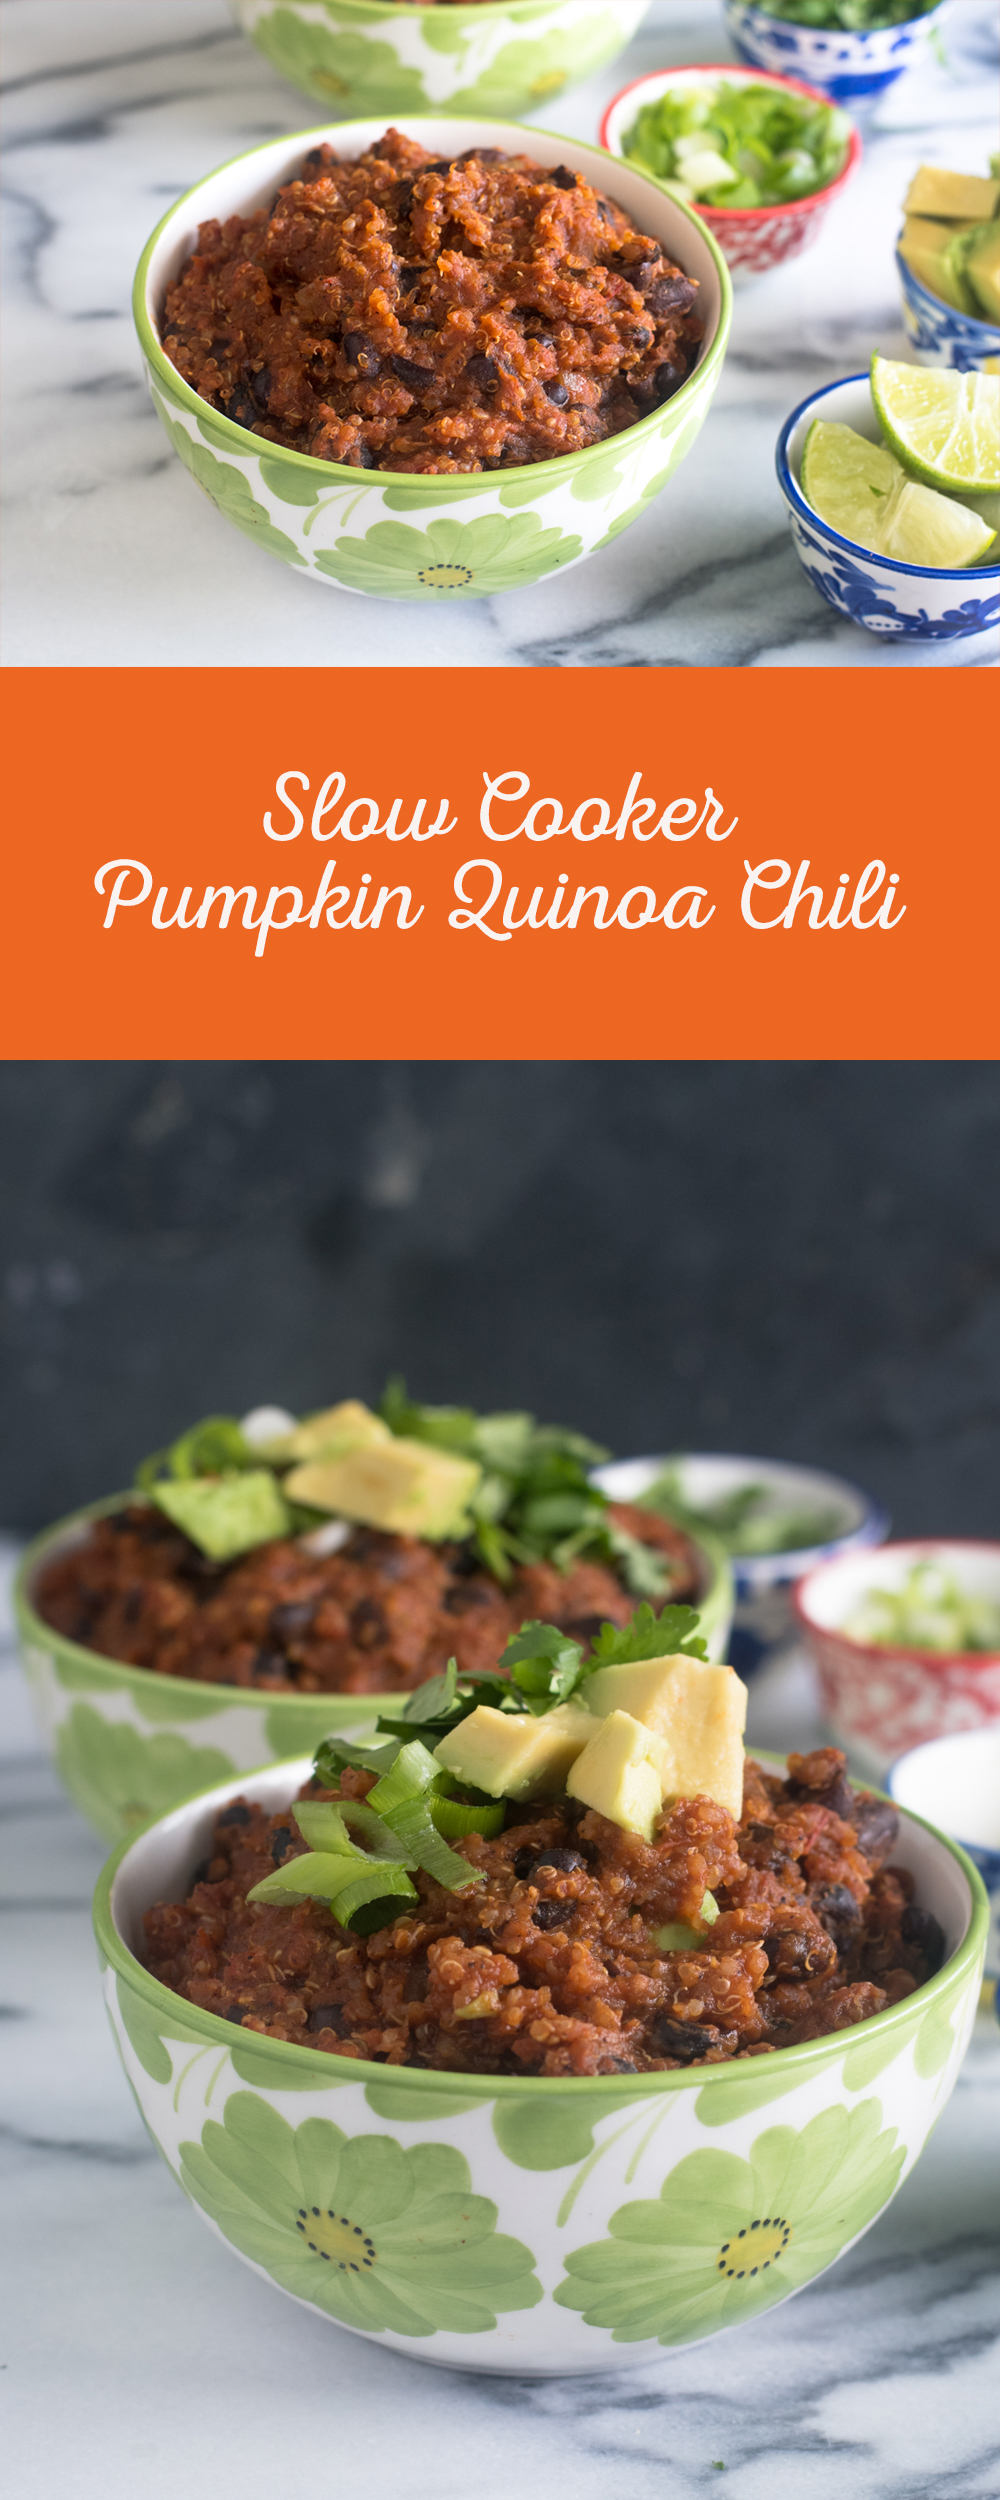 Slow Cooker Pumpkin Quinoa Chili is perfect for fall! The slow cooker does all the work for you! Great for meal prepping!